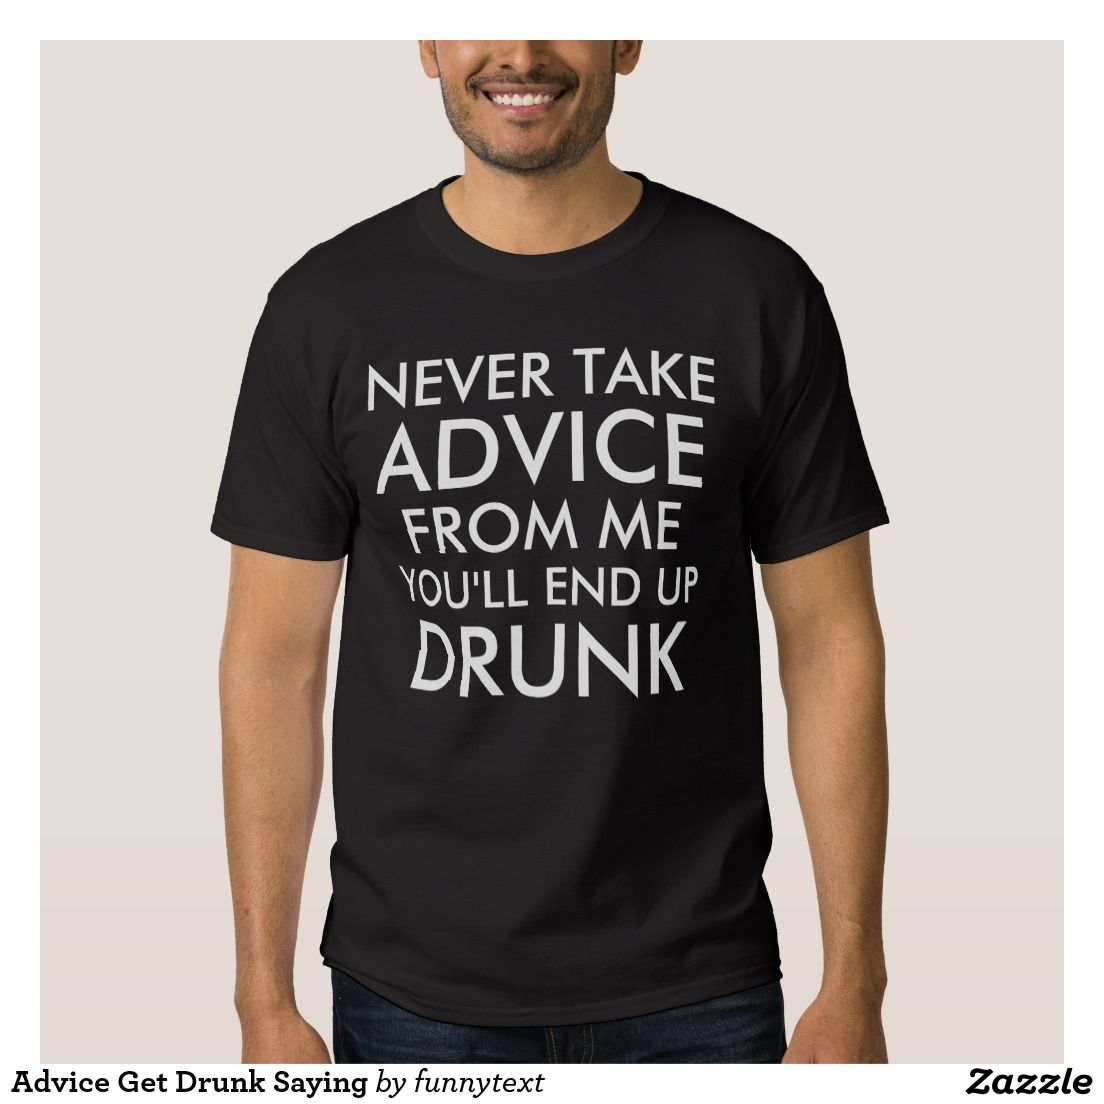 6e34ecce3 Advice Get Drunk Saying TShirts / Shirts / Apparel for Men and Women. Never  Take Advice From Me, You'll End Up Drunk. Funny saying / quote about  drinking ...